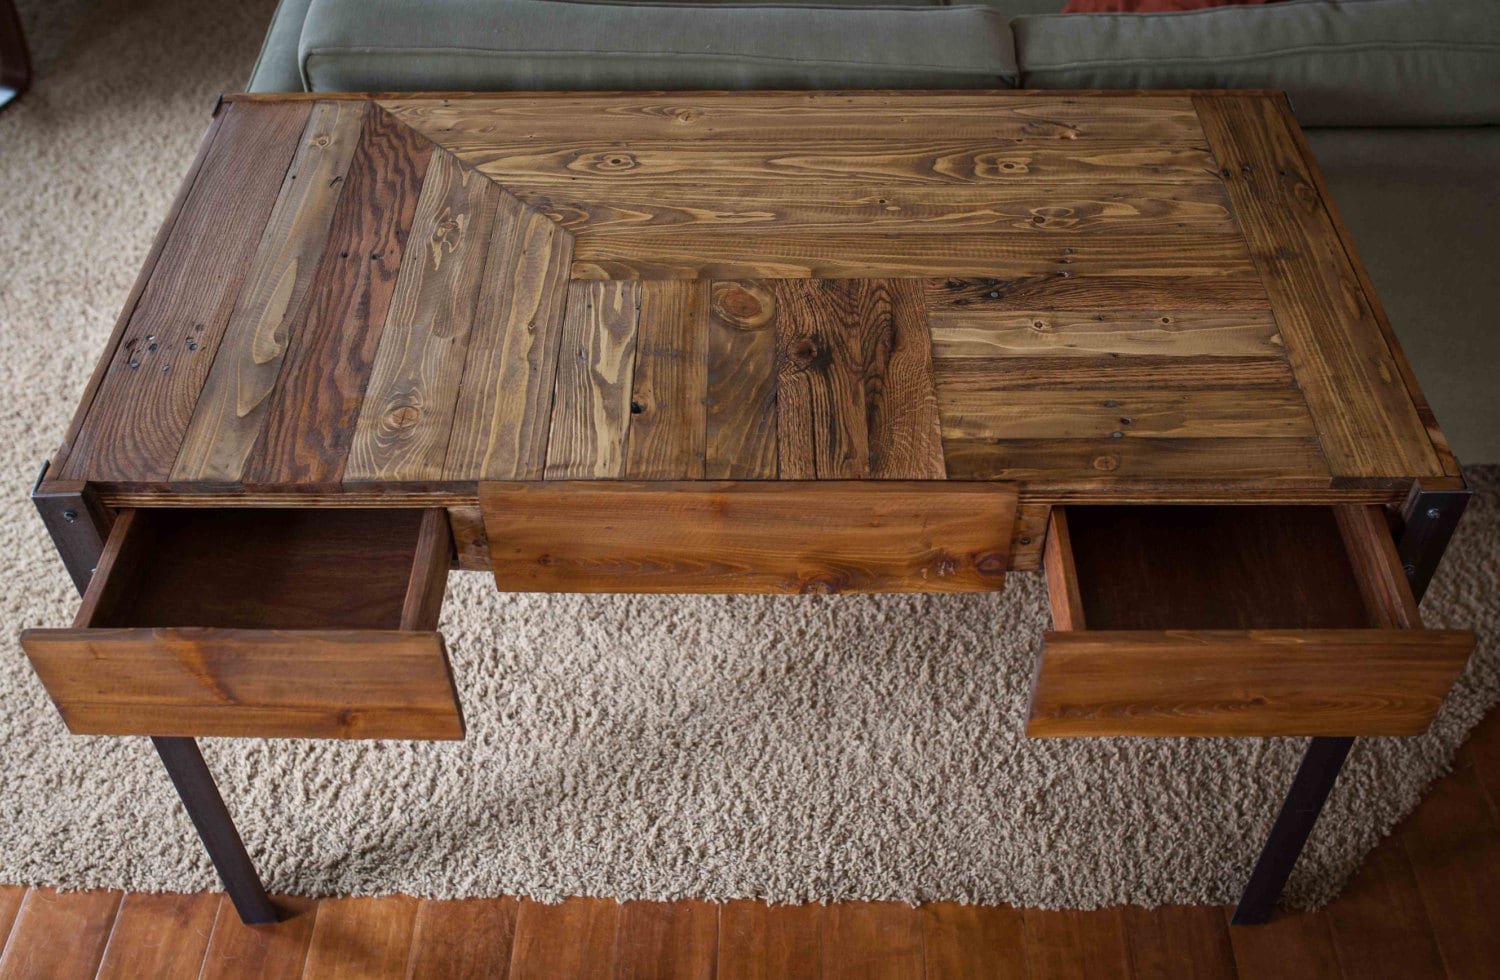 Pallet Wood Desk With Metal Legs And Two Drawers Etsy